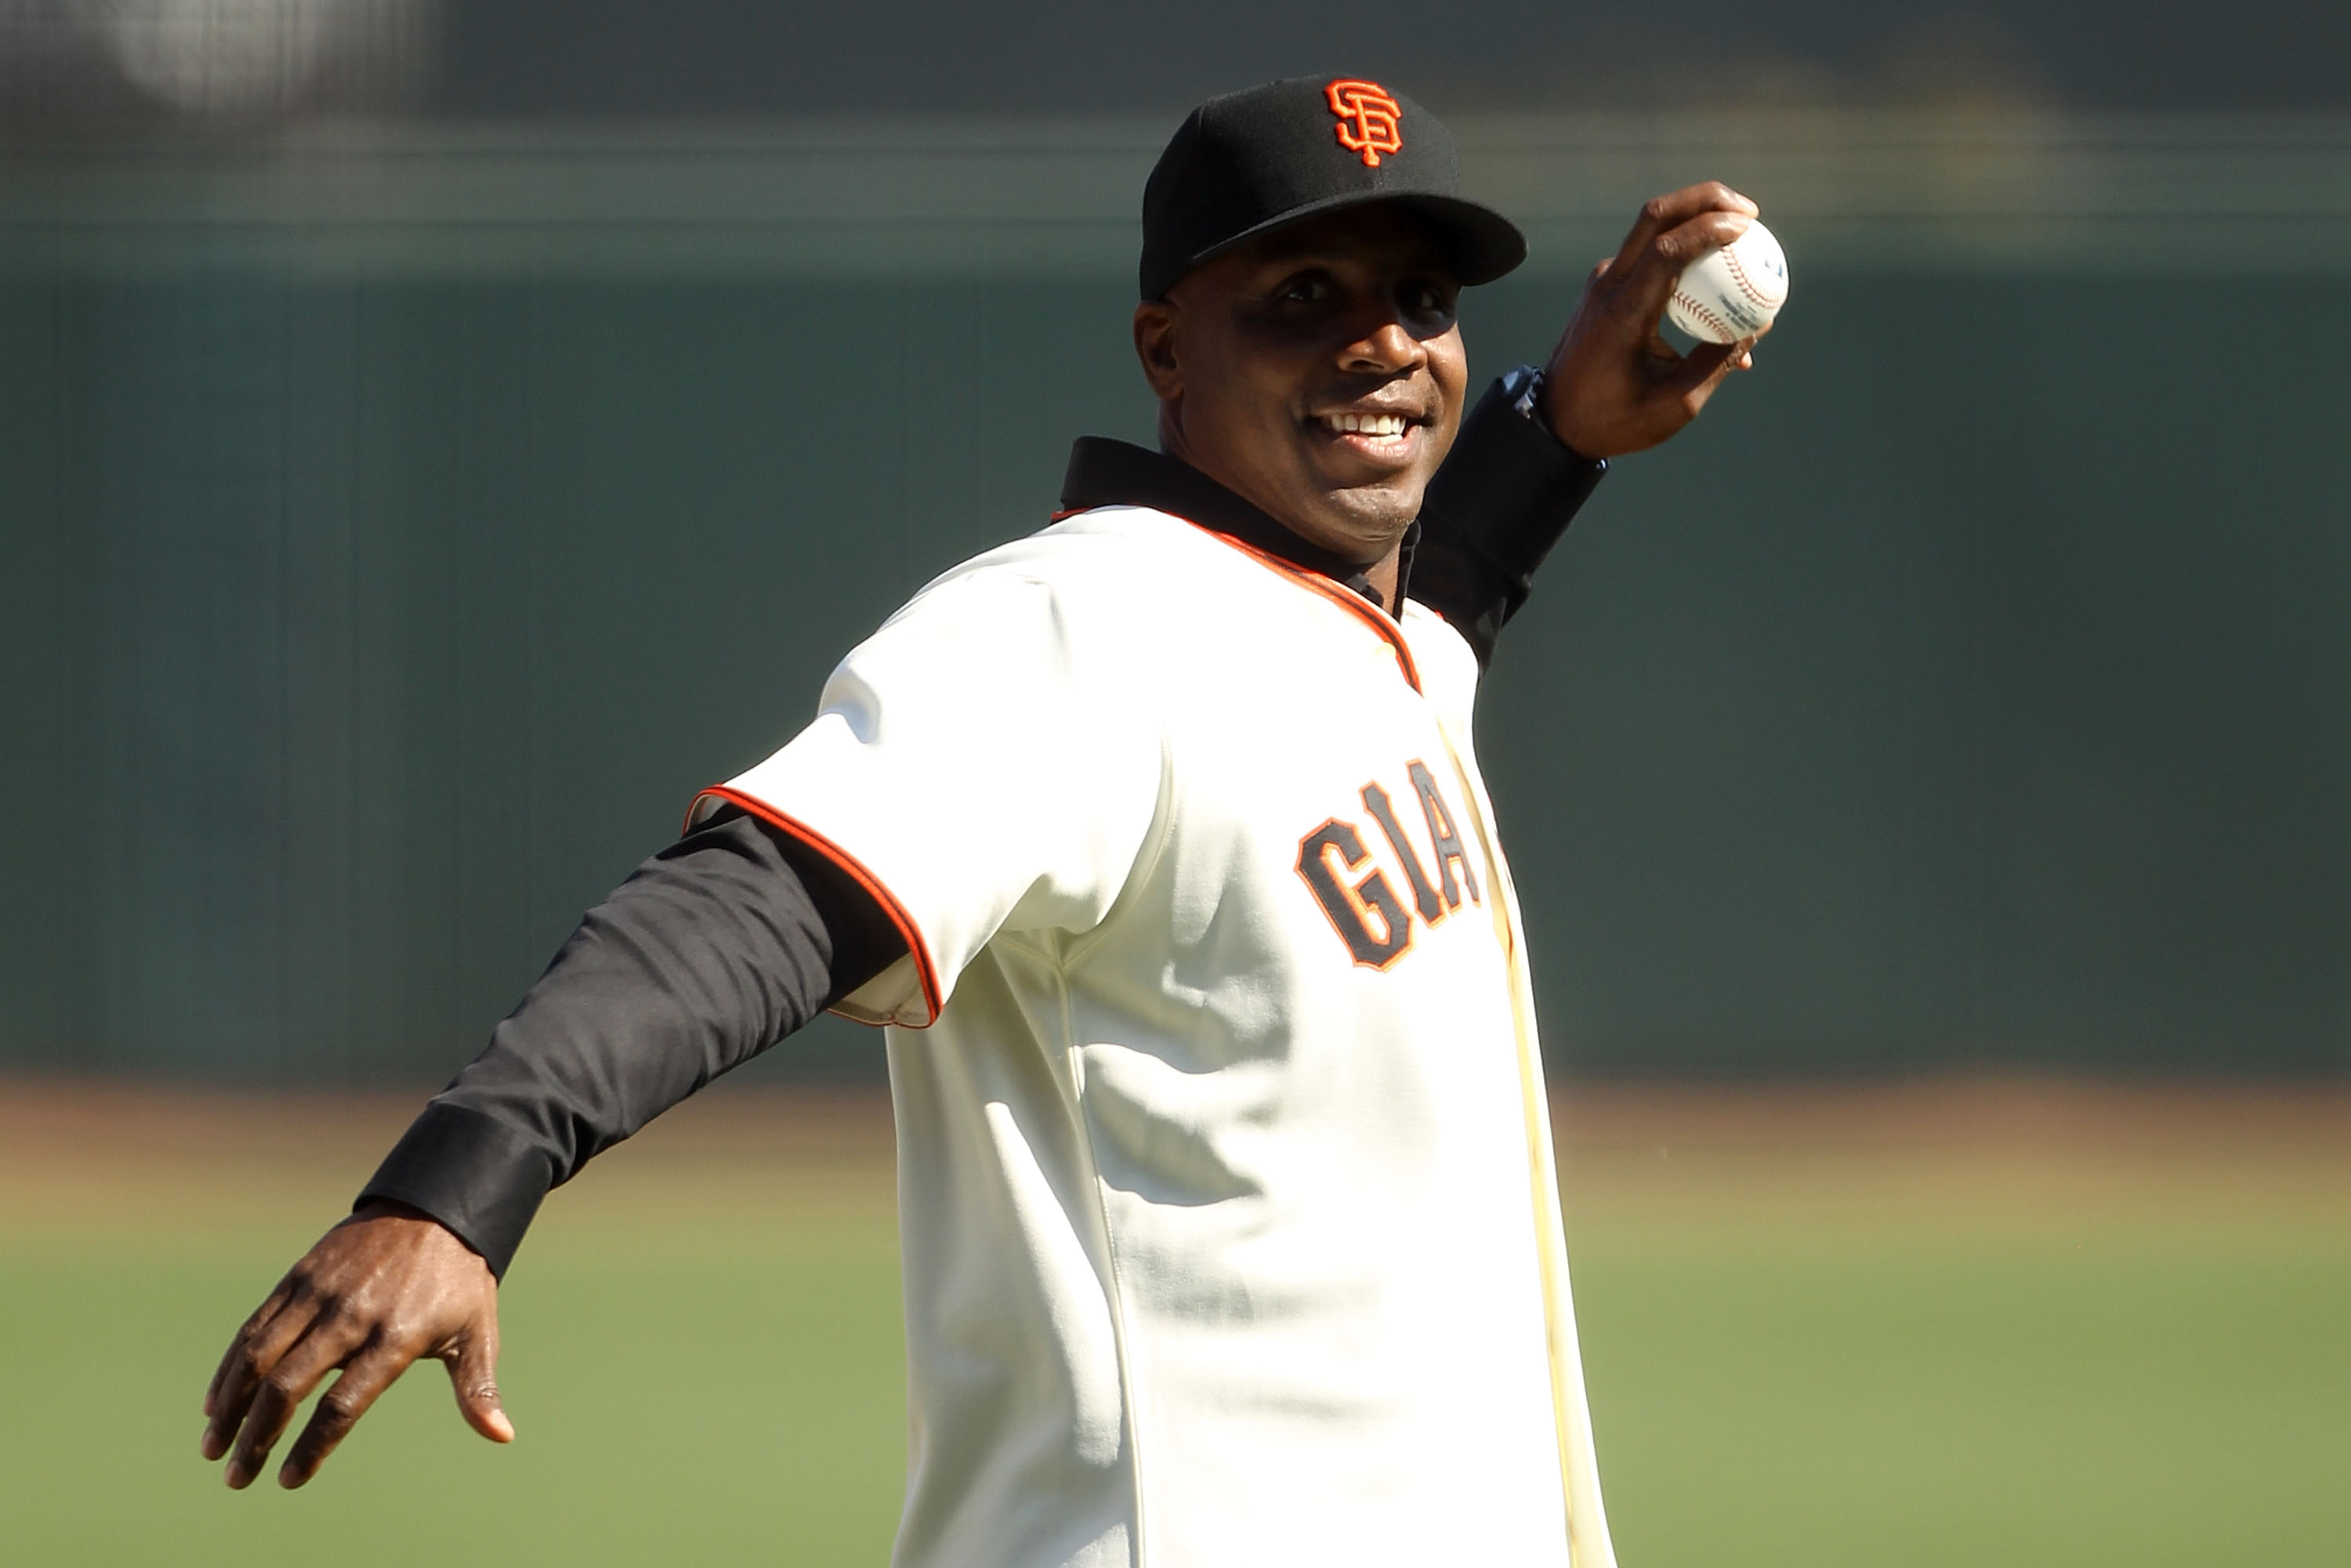 SAN FRANCISCO - OCTOBER 19:  Former San Francisco Giants outfielder Barry Bonds throws out the first pitch prior to Game Three of the NLCS against the San Francisco Giants during the 2010 MLB Playoffs at AT&T Park on October 19, 2010 in San Francisco, Cal